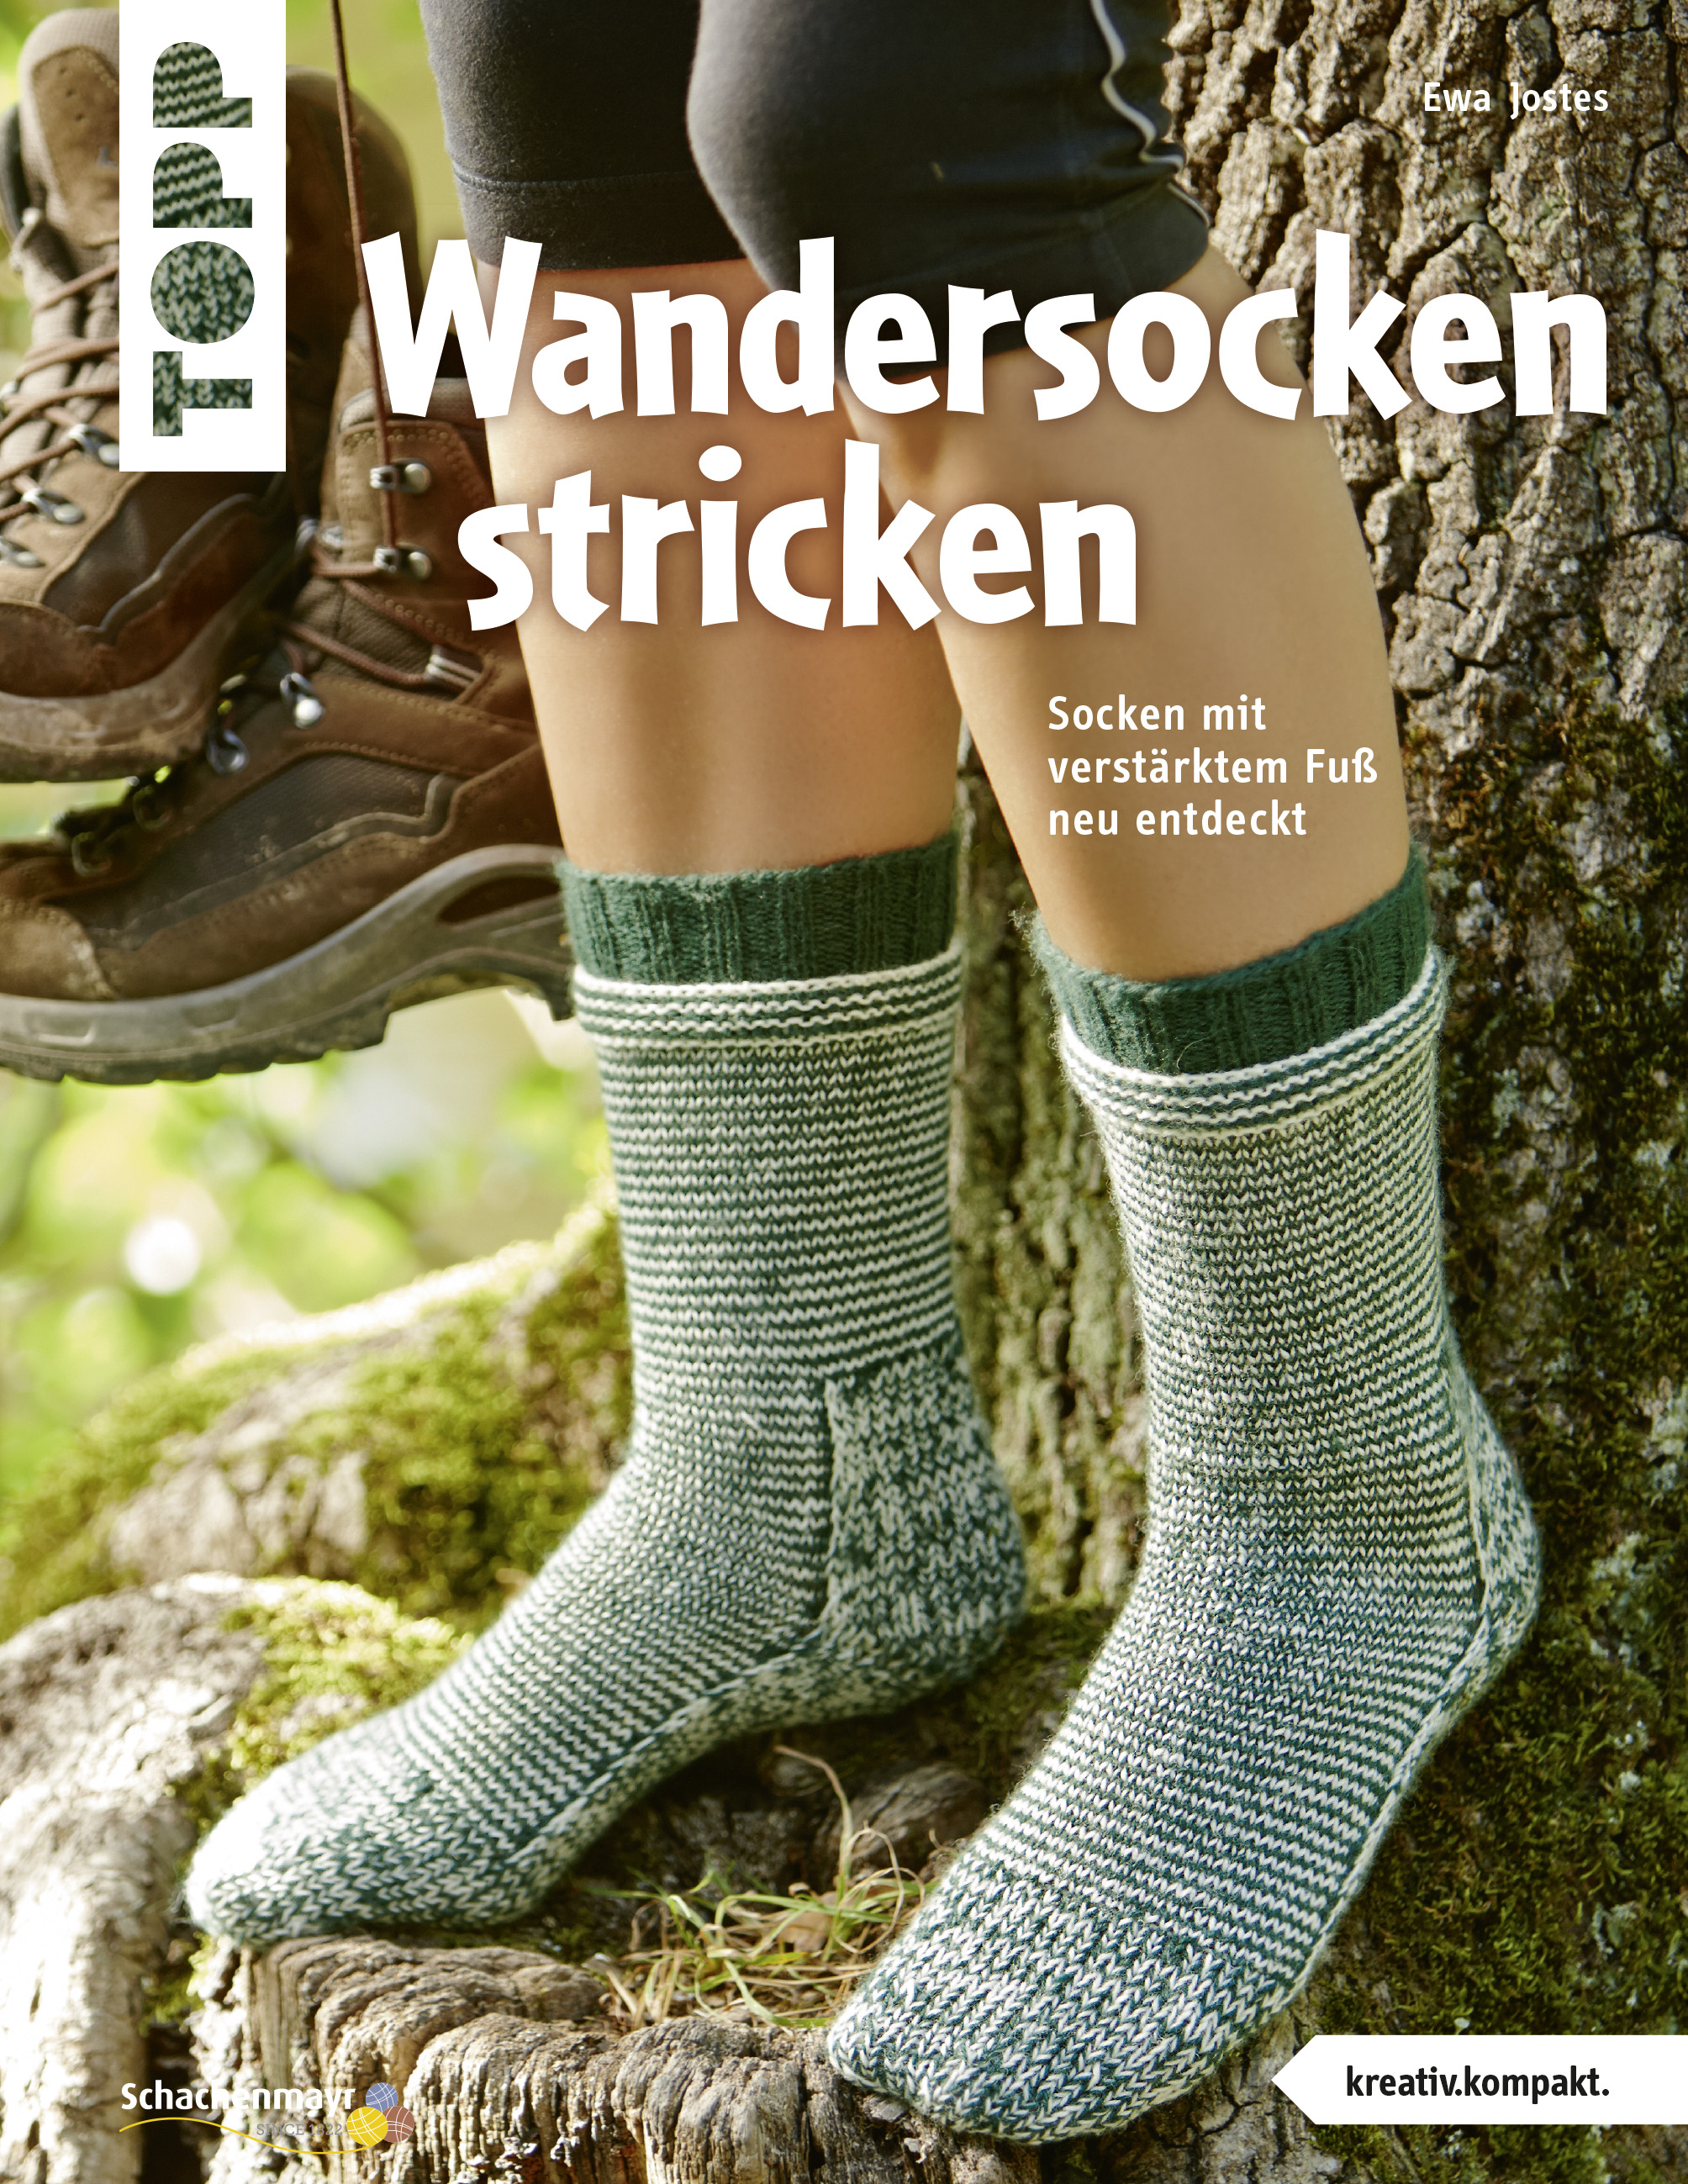 TOPP Wandersocken stricken